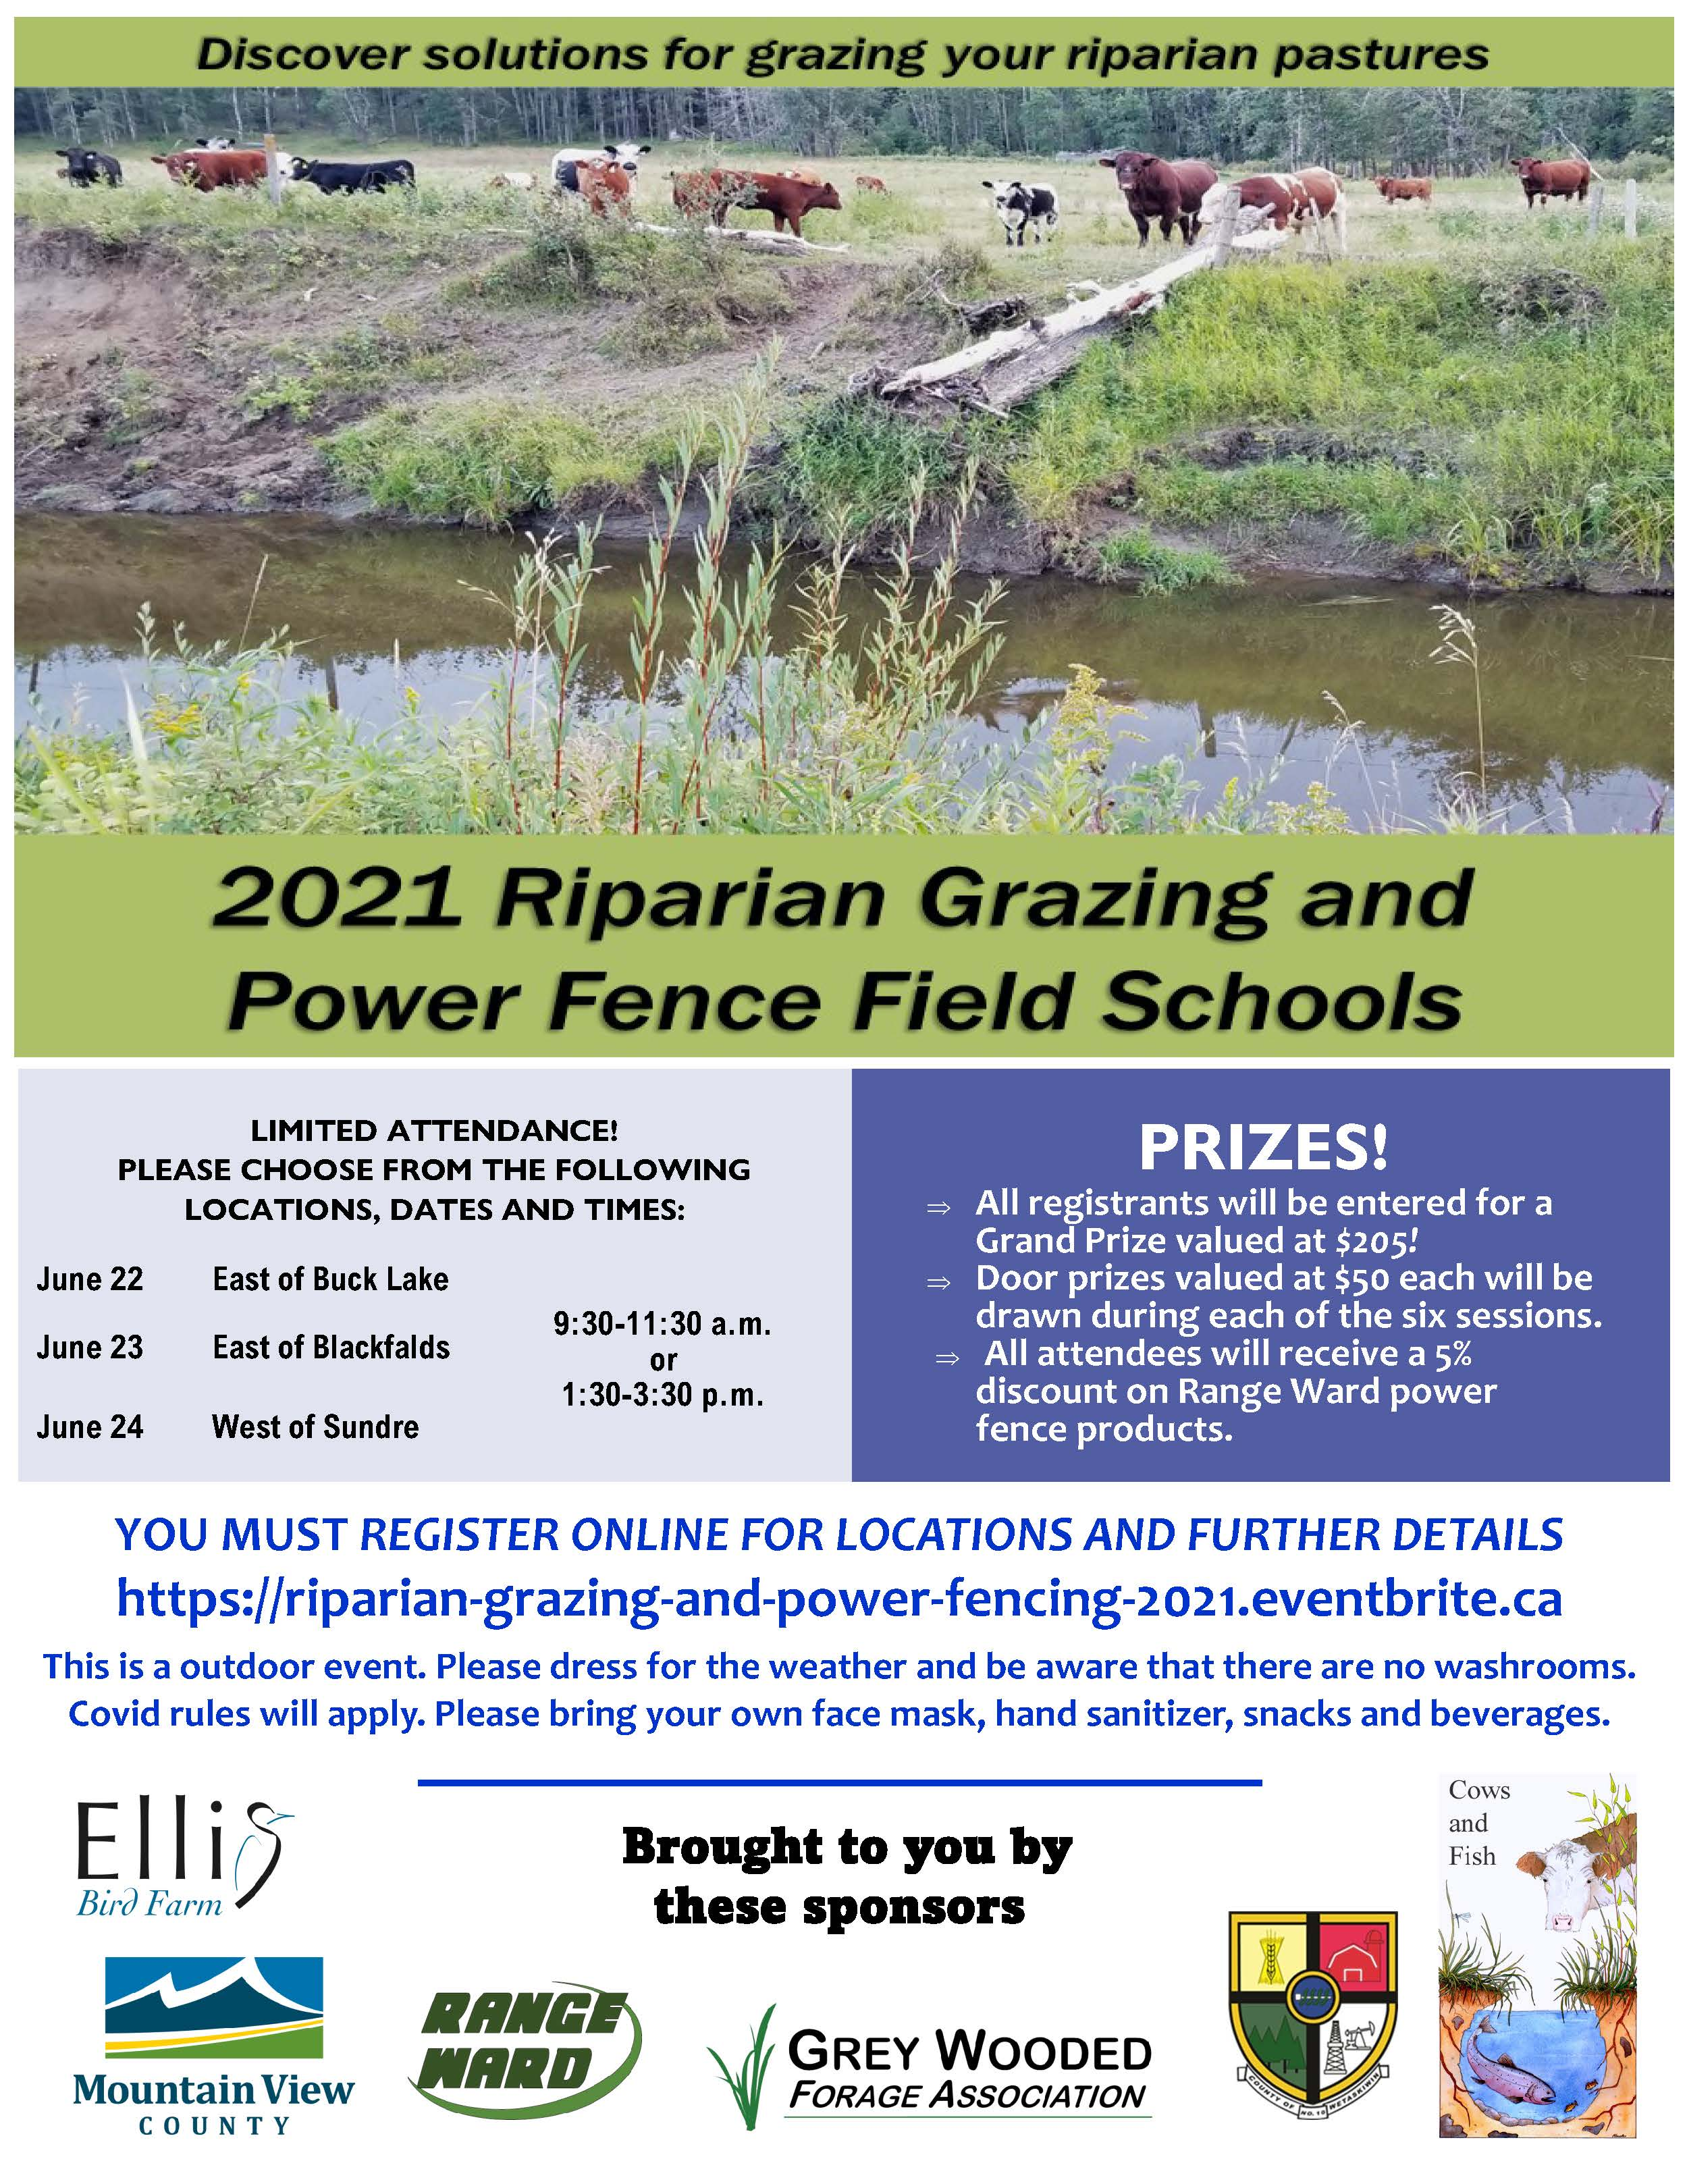 Riparian Grazing and Power Fence Field Schools